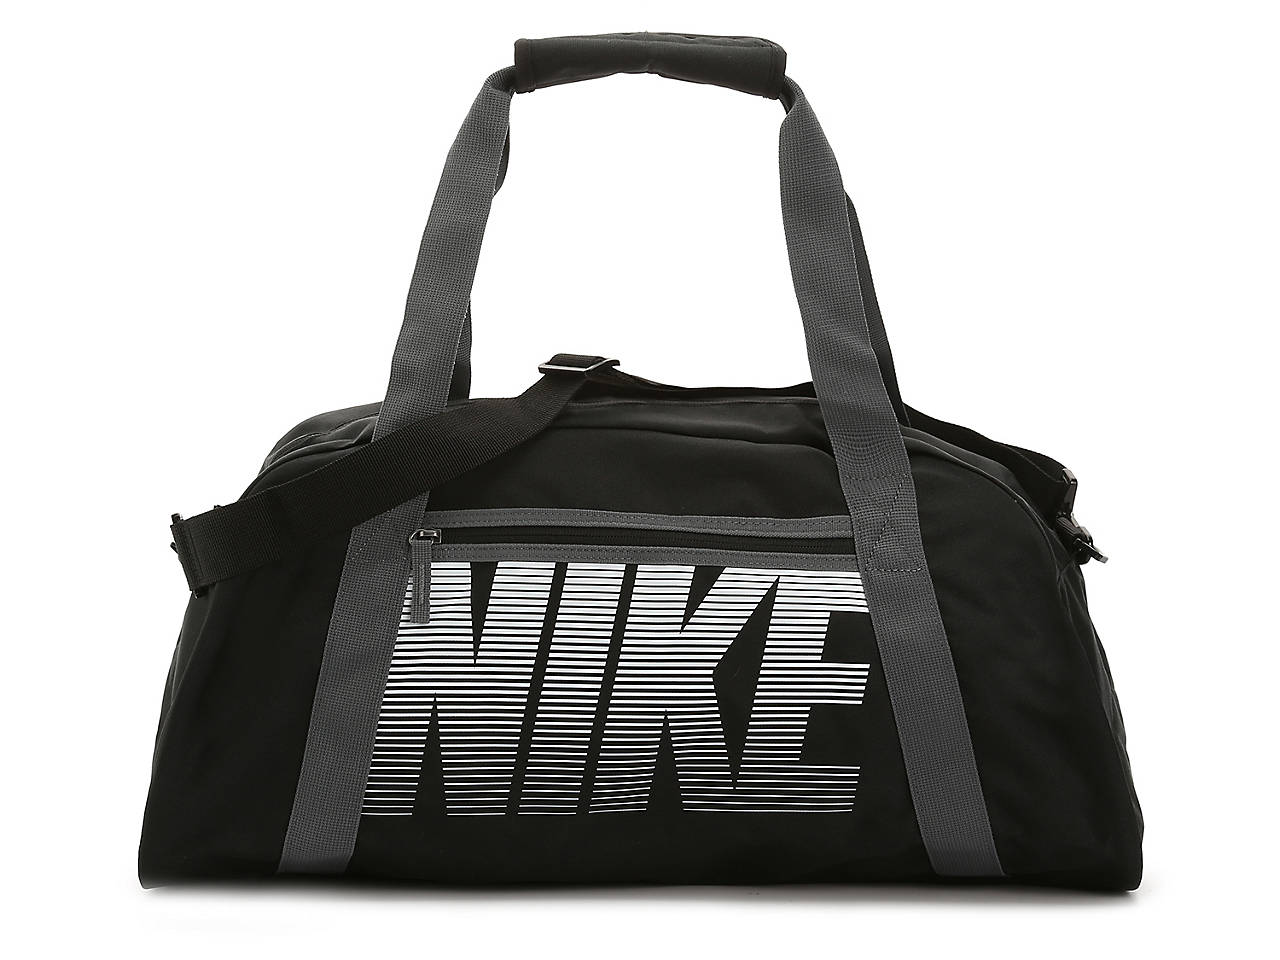 0659651a6b Nike Gym Club Gym Bag Men s Handbags   Accessories